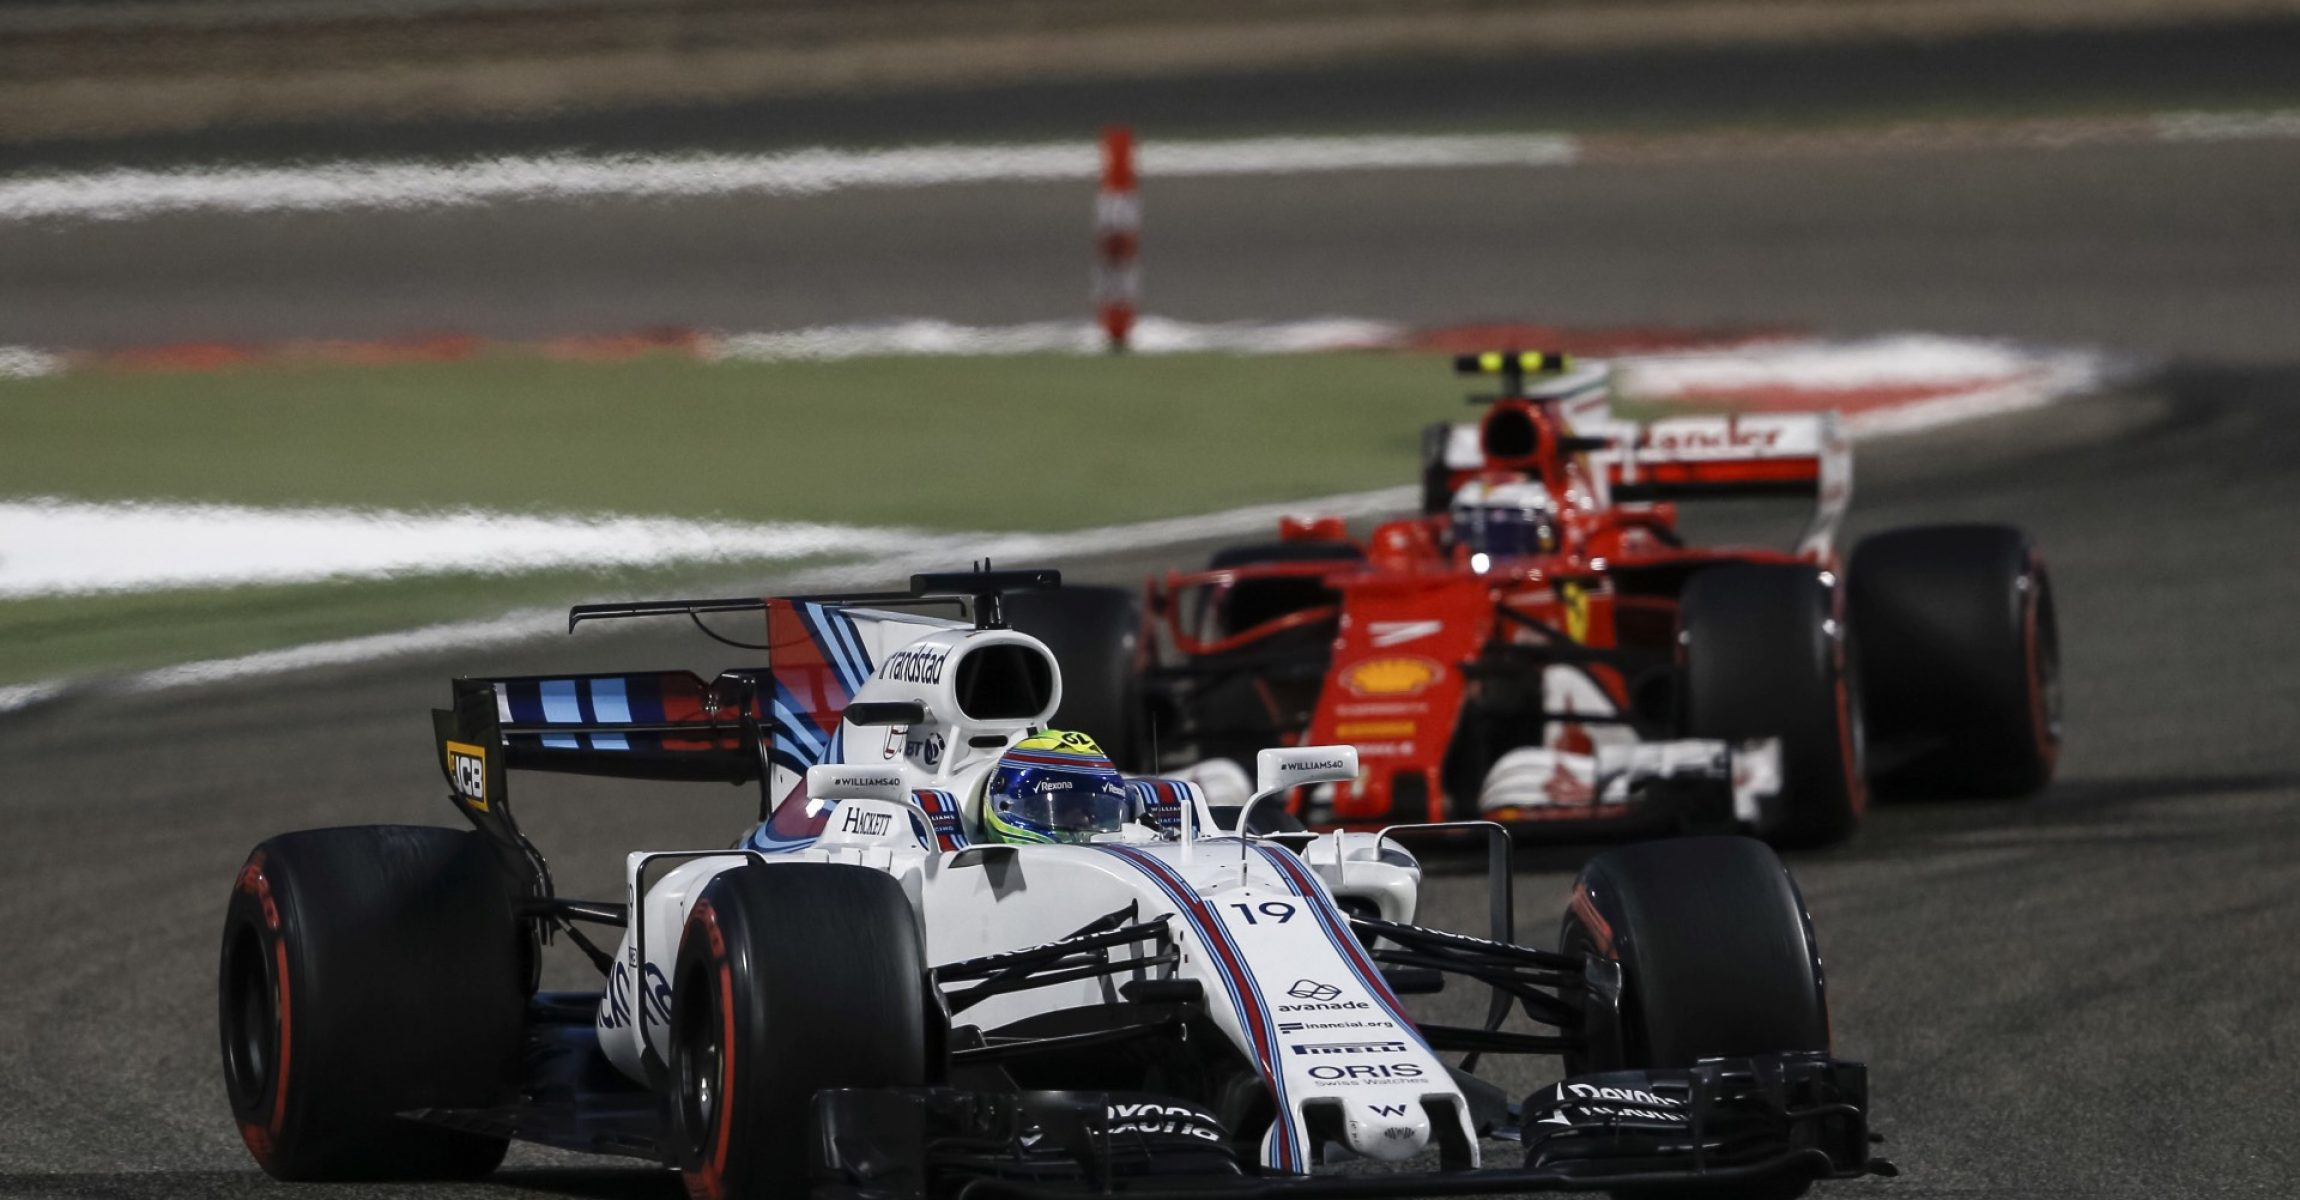 Bahrain Grand Prix Race